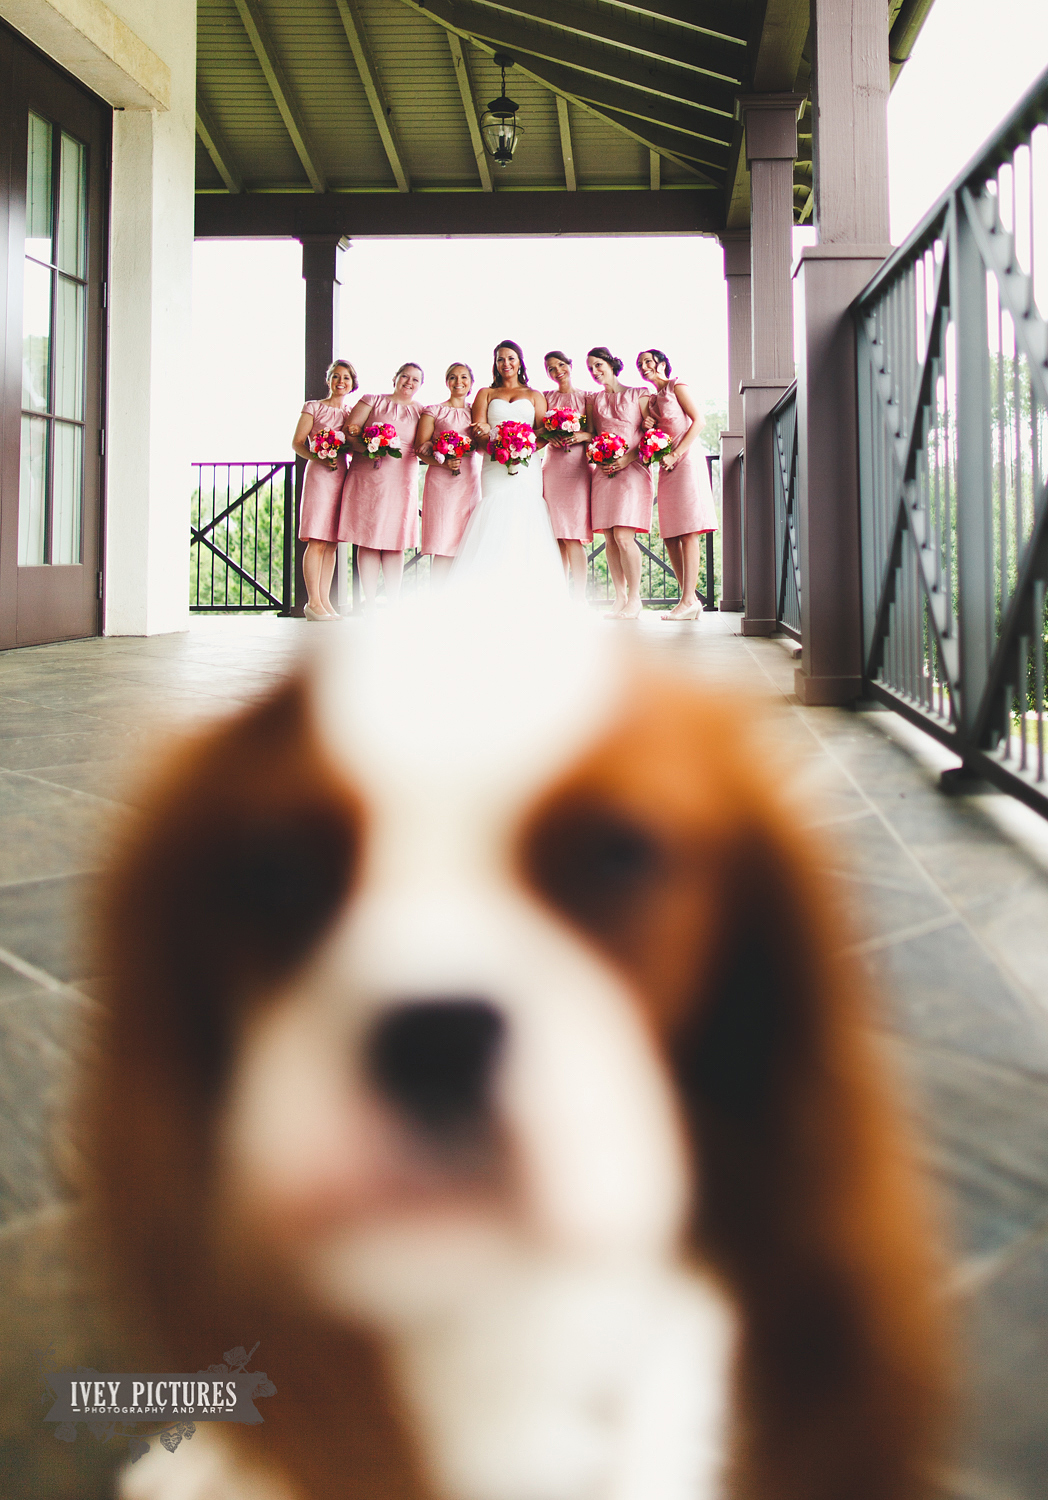 Dog Photobomb at Wedding